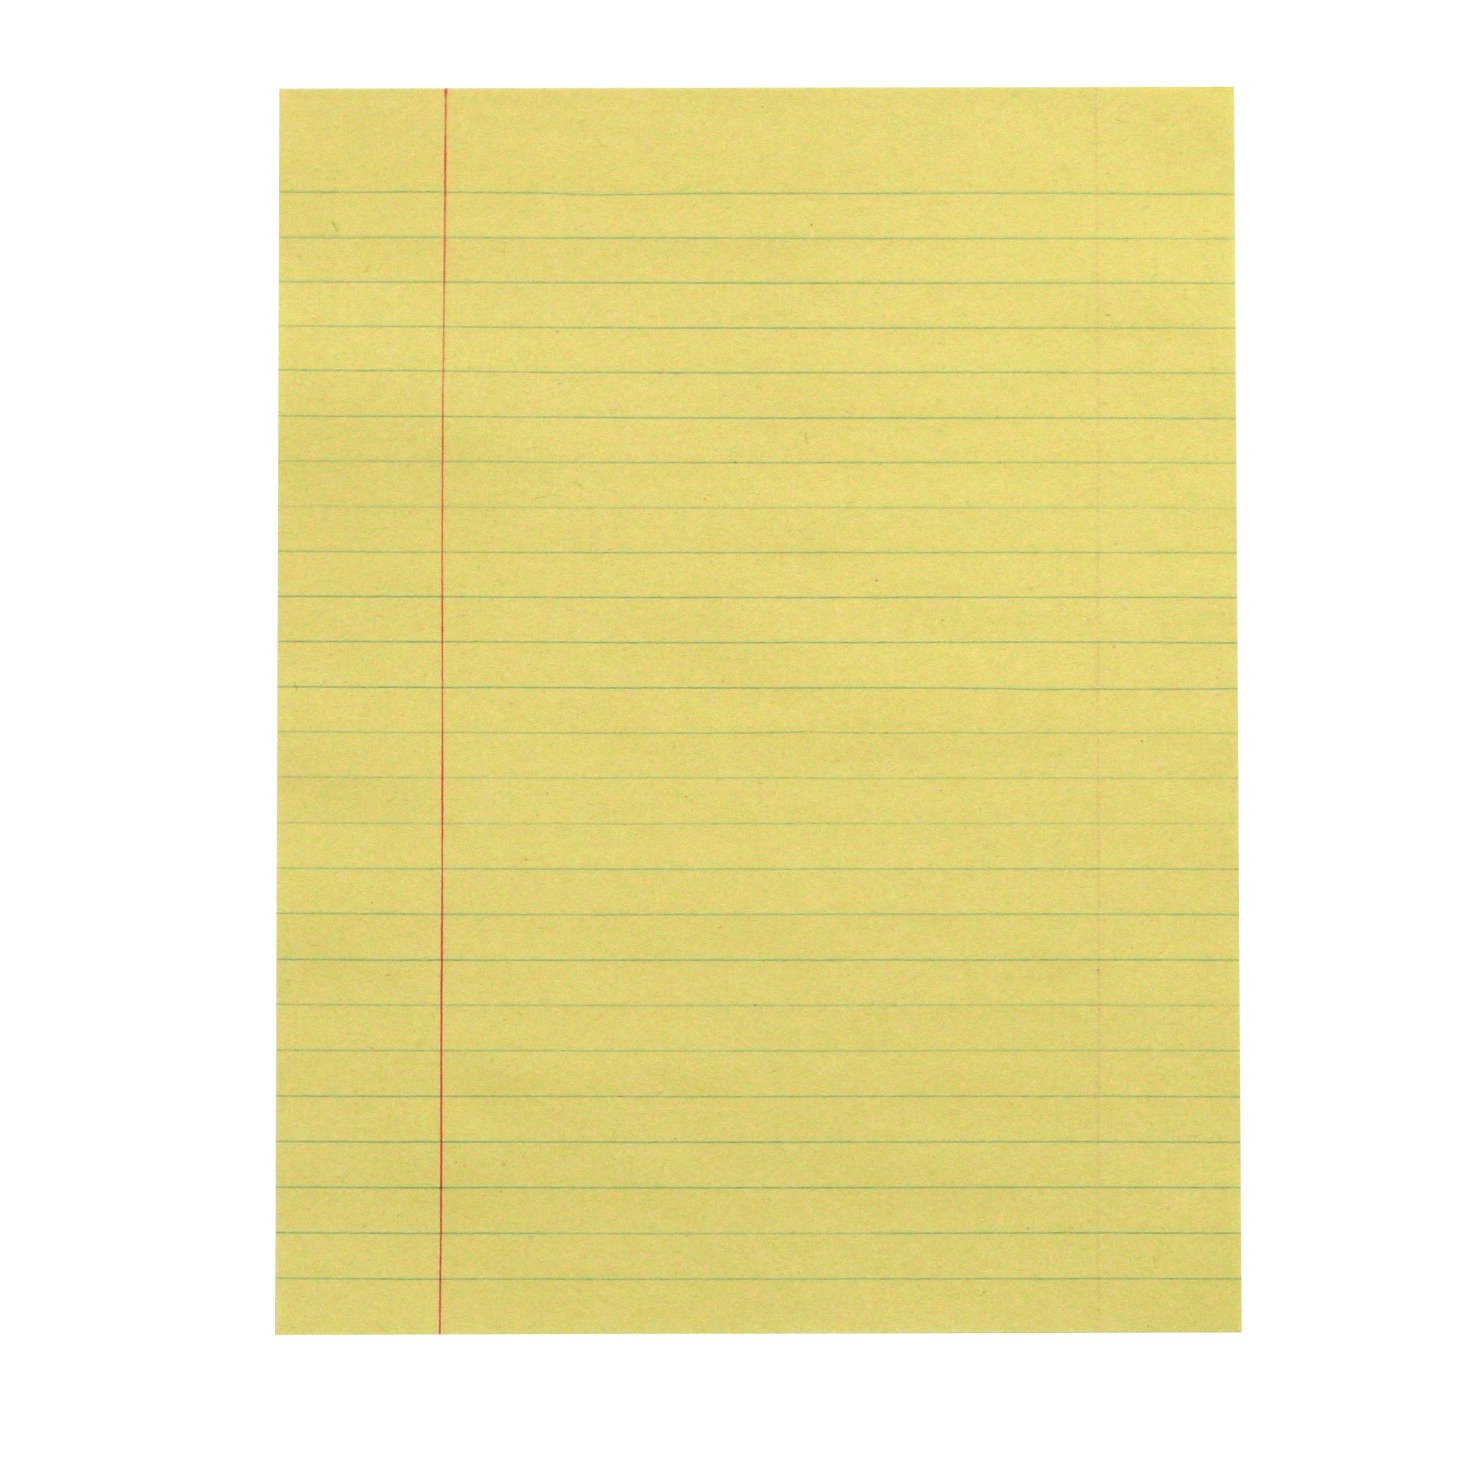 School Smart Theme Paper with Red Margin - 8 in x 10 1/2 in - Pack of 500 - Yellow Newsprint